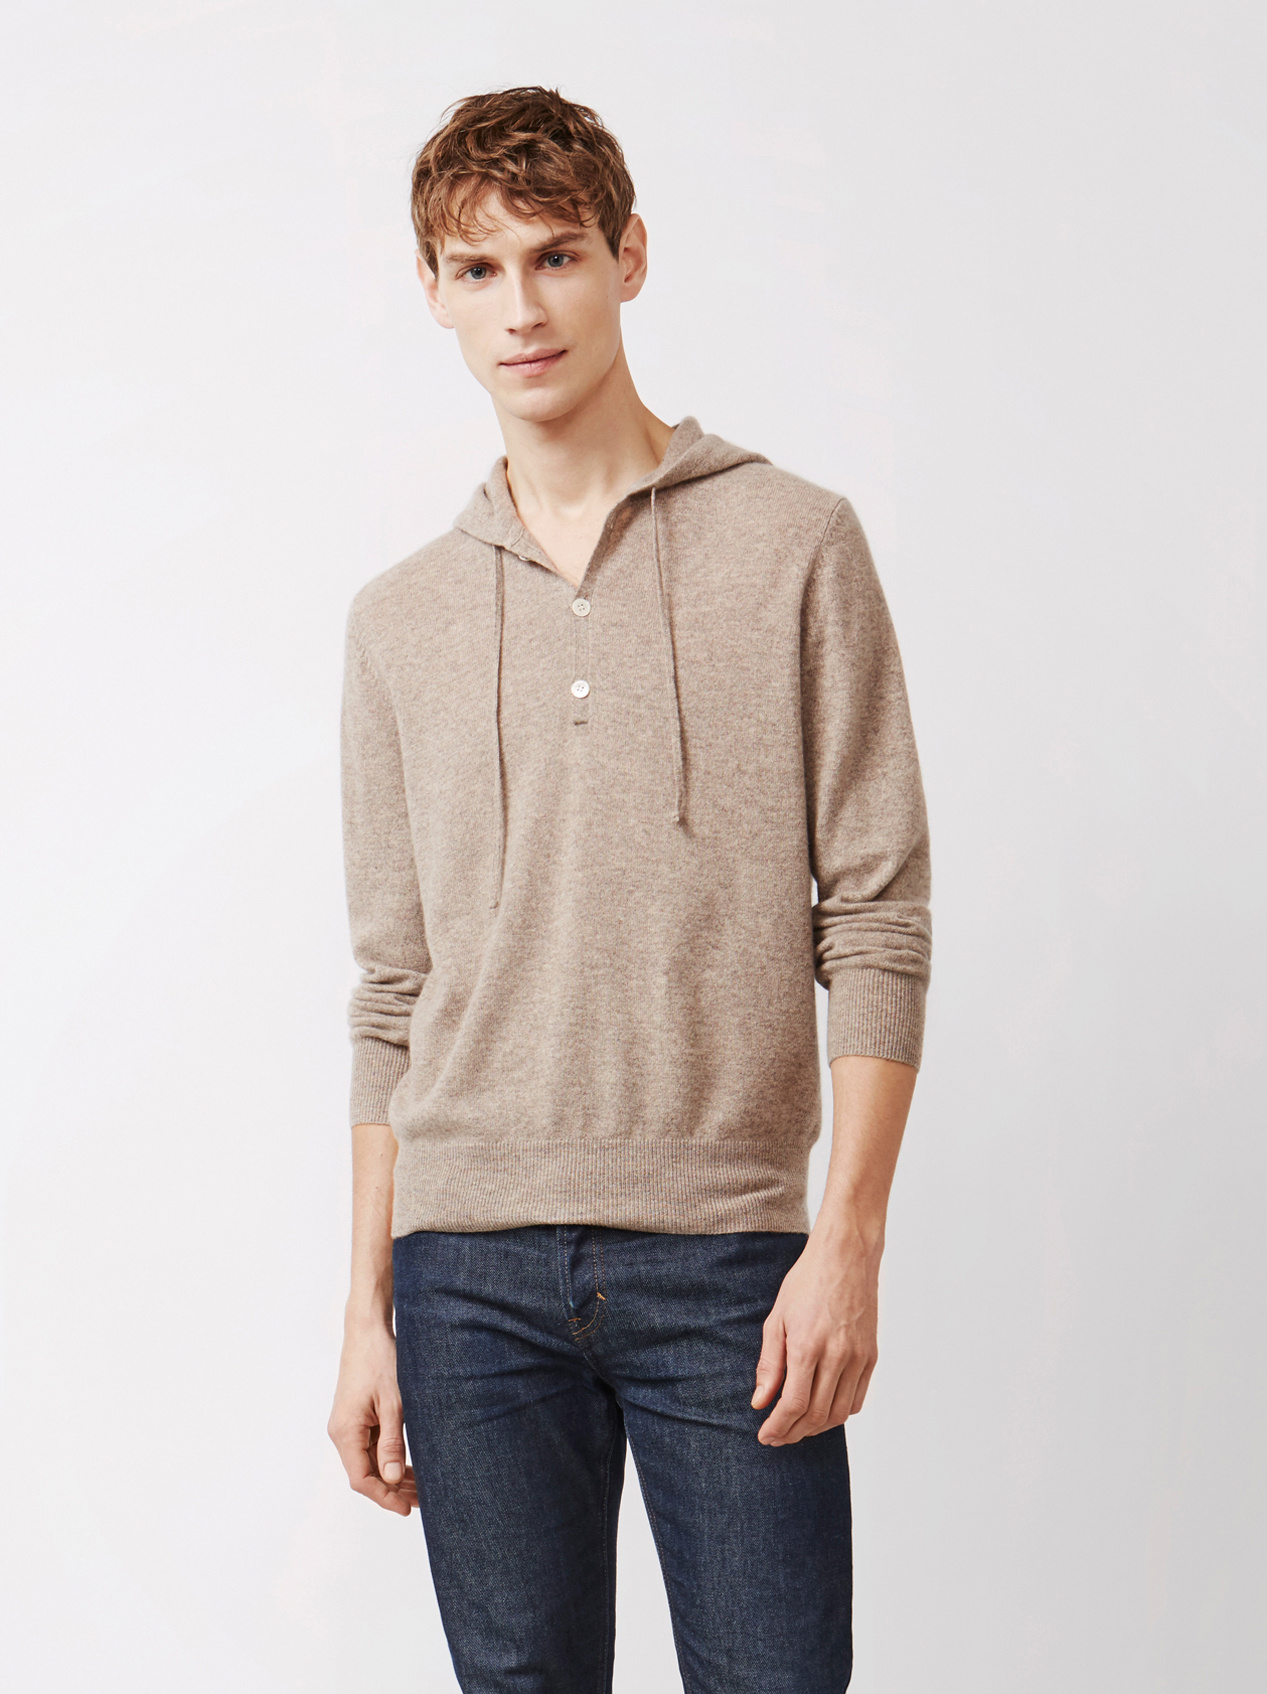 Soft Goat Men's Hoodie With Buttons Taupe